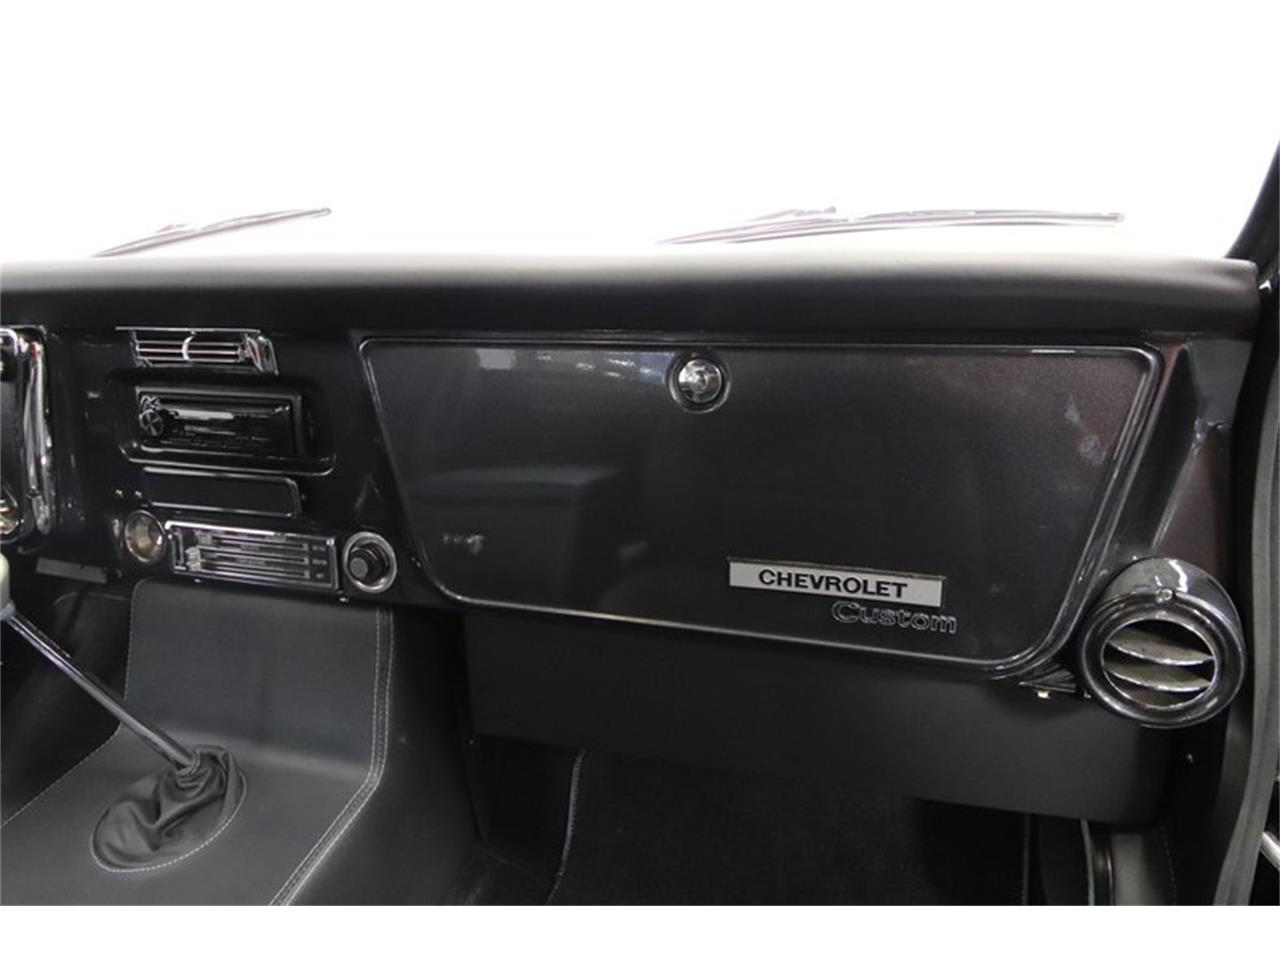 Large Picture of Classic '70 Chevrolet C10 located in Arizona - $58,995.00 Offered by Streetside Classics - Phoenix - NIMH